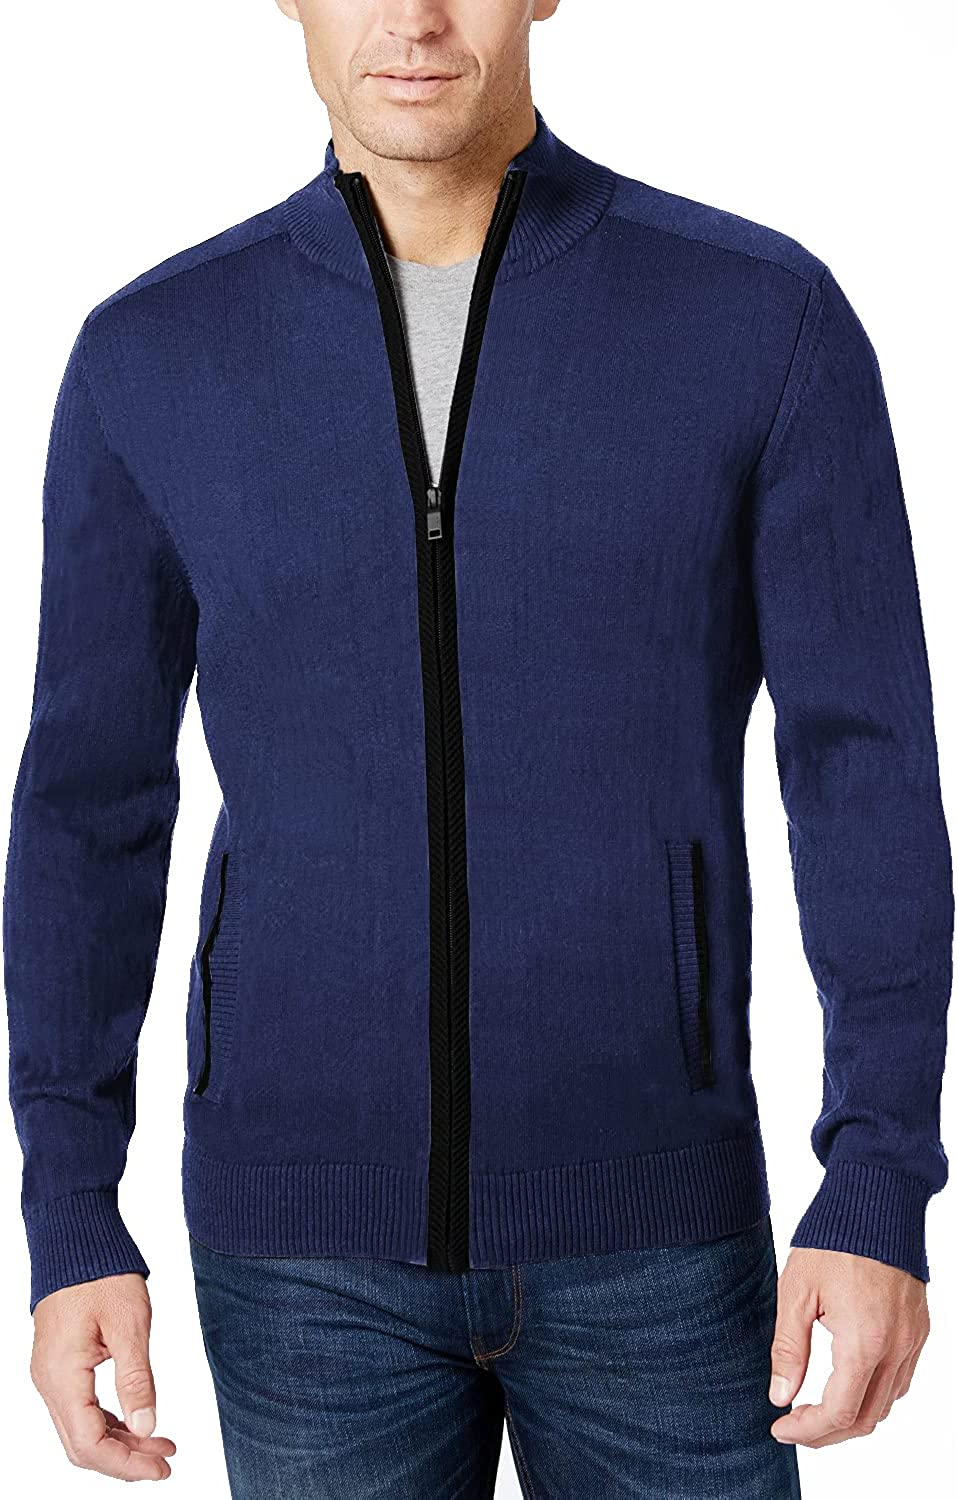 COOFANDY Men's Full Popularity Zip Year-end gift Sweater Fit Slim Cardiga Stylish Knitted